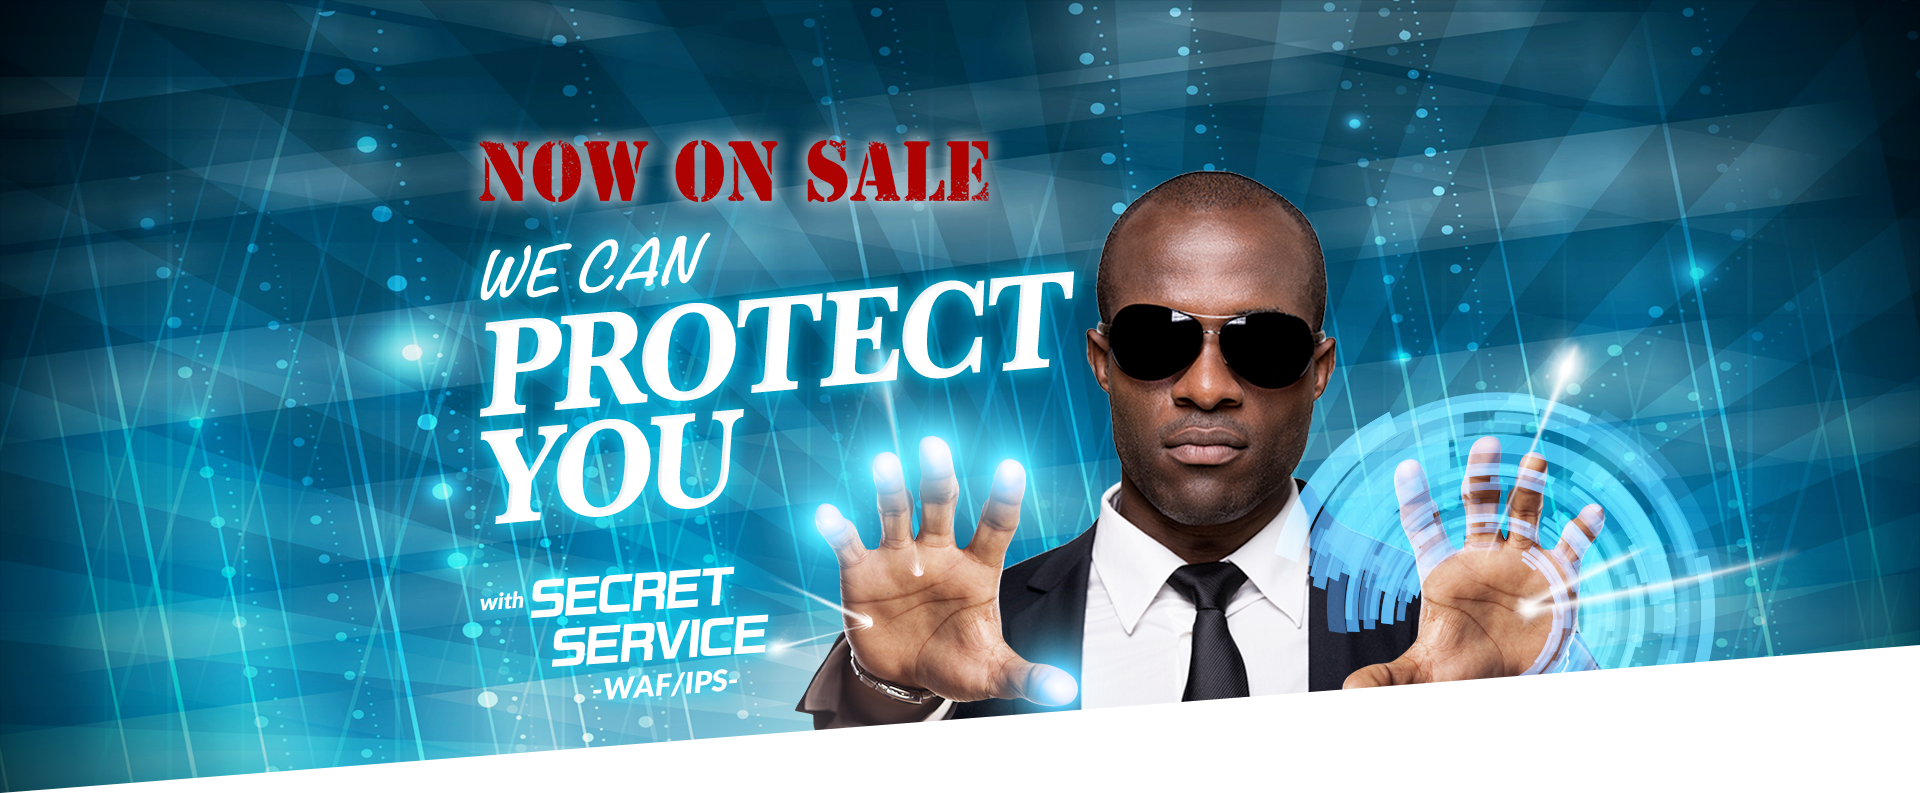 NOW ON SALE! WE CAN PROTECT YOU with シークレットサービス IPS/WAF